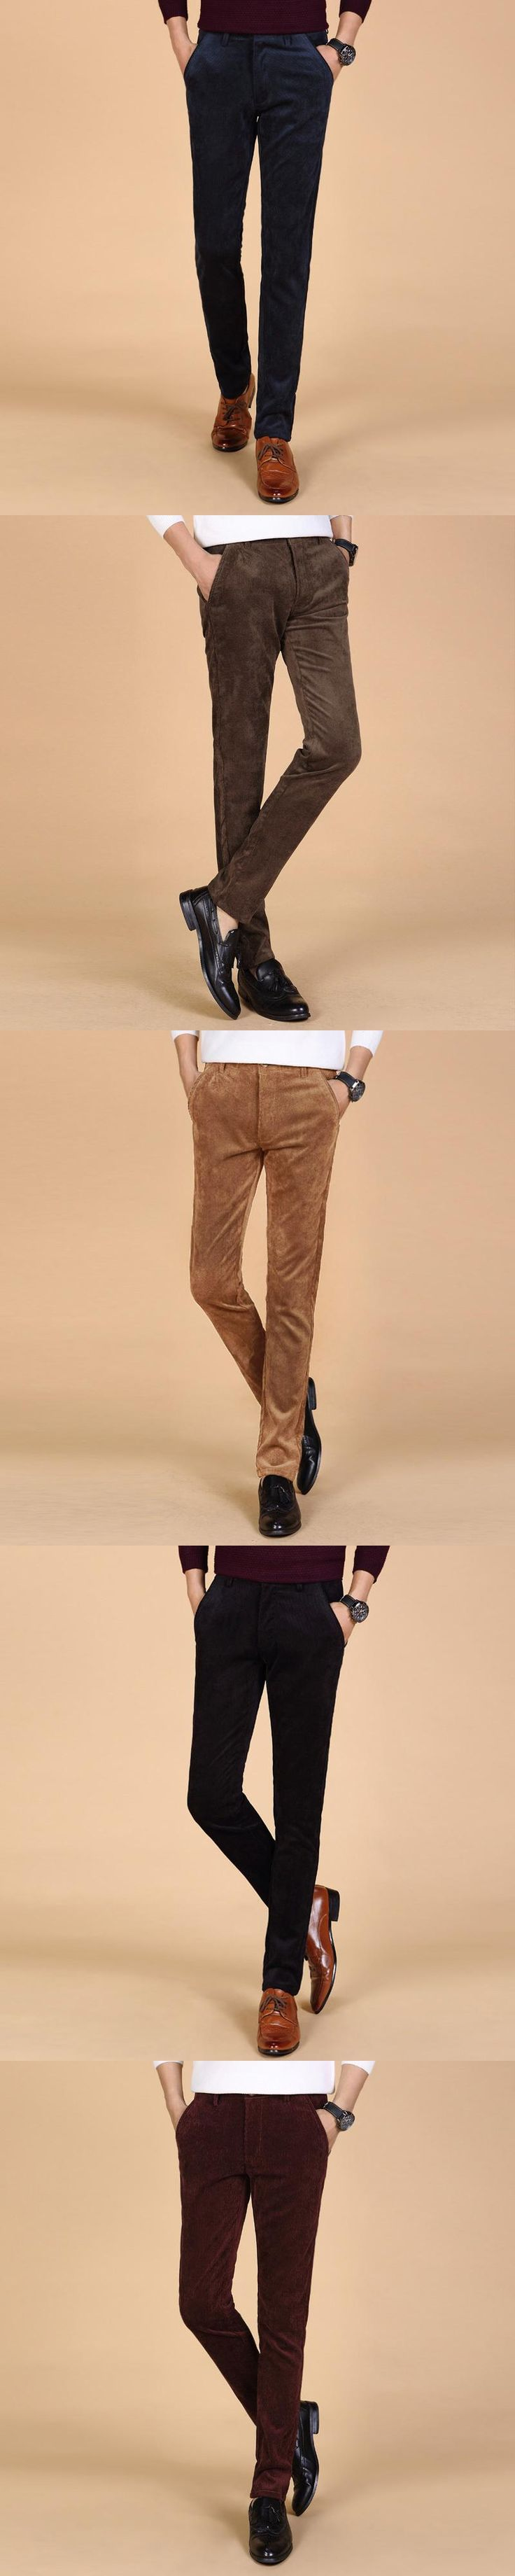 2017 New Arrival Spring and Autumn Men Corduroy Pants Solid Color Mid-waist Slim Business Affairs Directly Canister Casual Pants